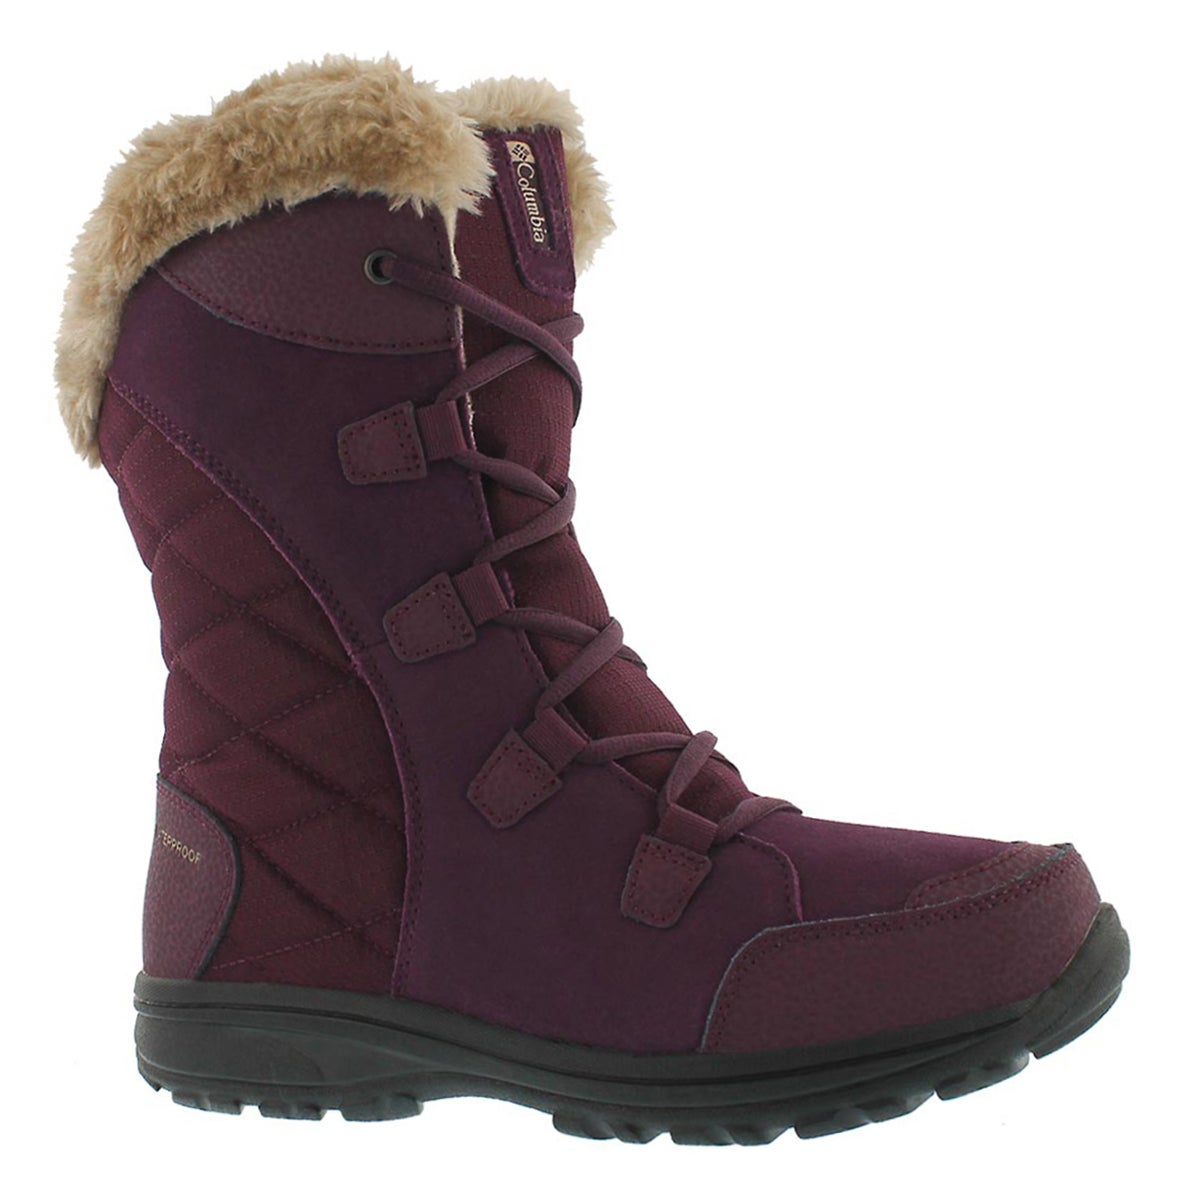 Lds Ice Maiden II purple winter boot